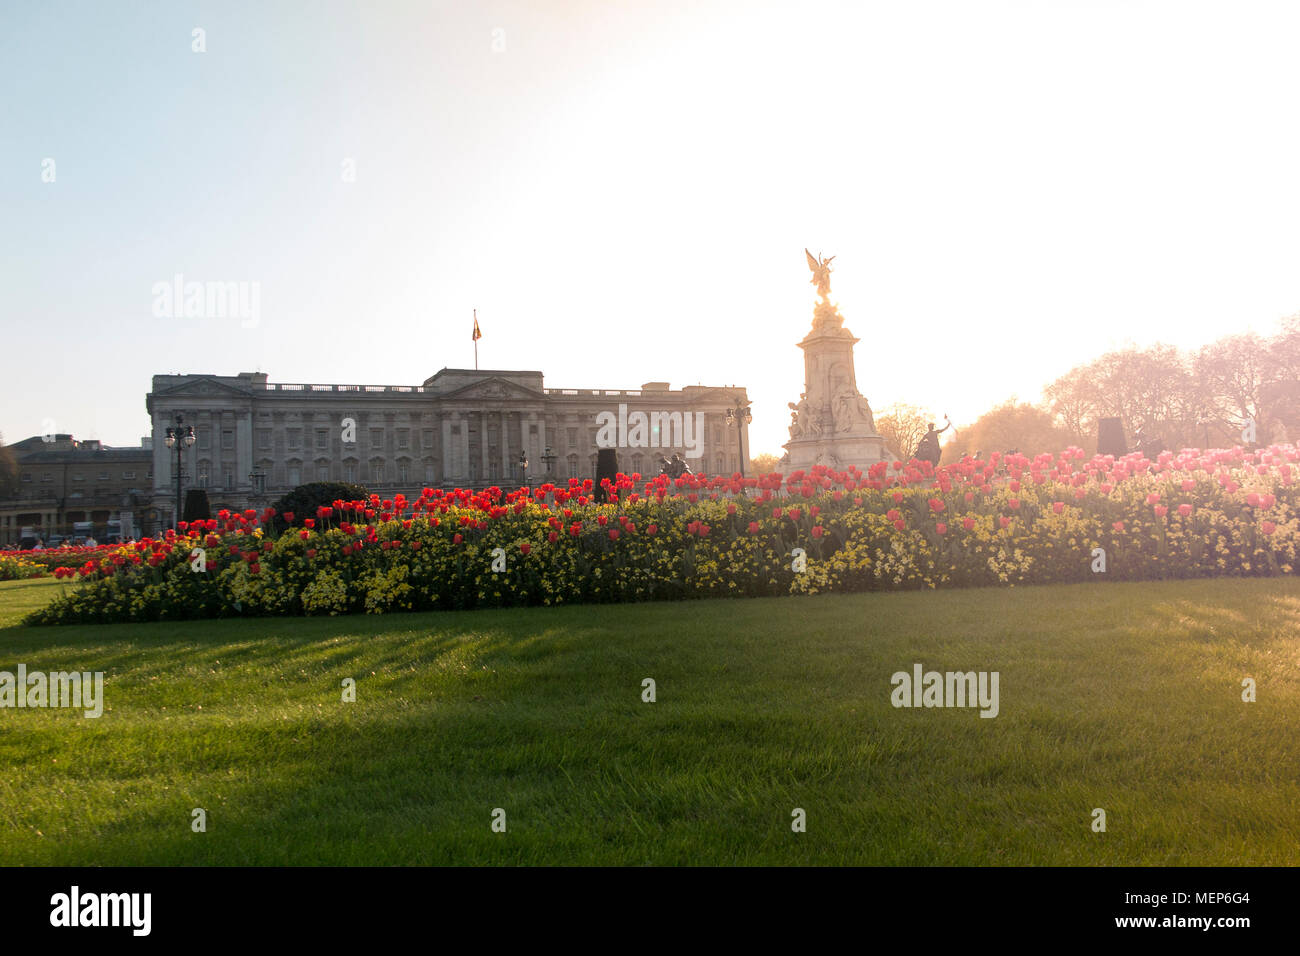 Buckingham Palace at dusk in Spring with bright red flowers for the Commonwealth Heads of Government Meeting in April 2018 - Stock Image